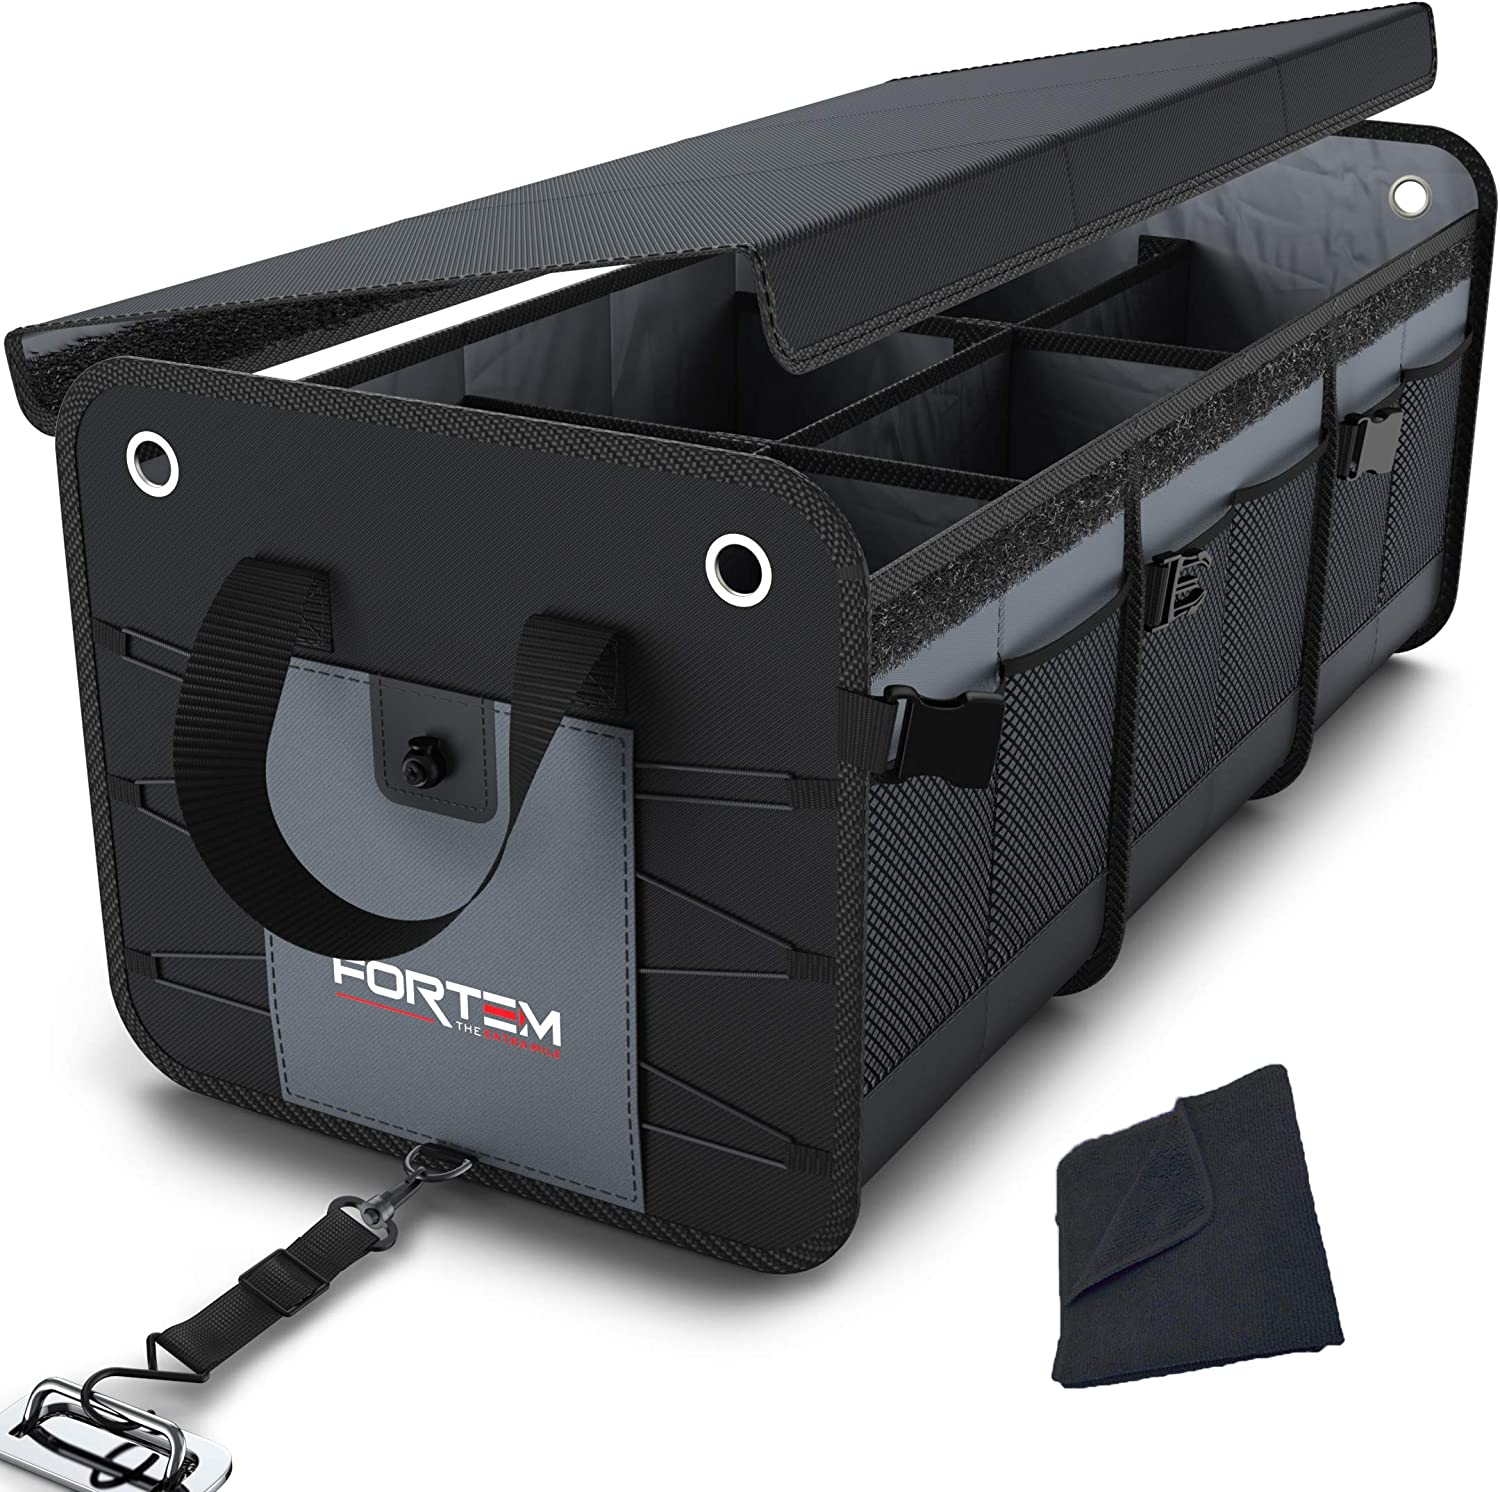 Fortem Car Trunk Organizer With Foldable Cover